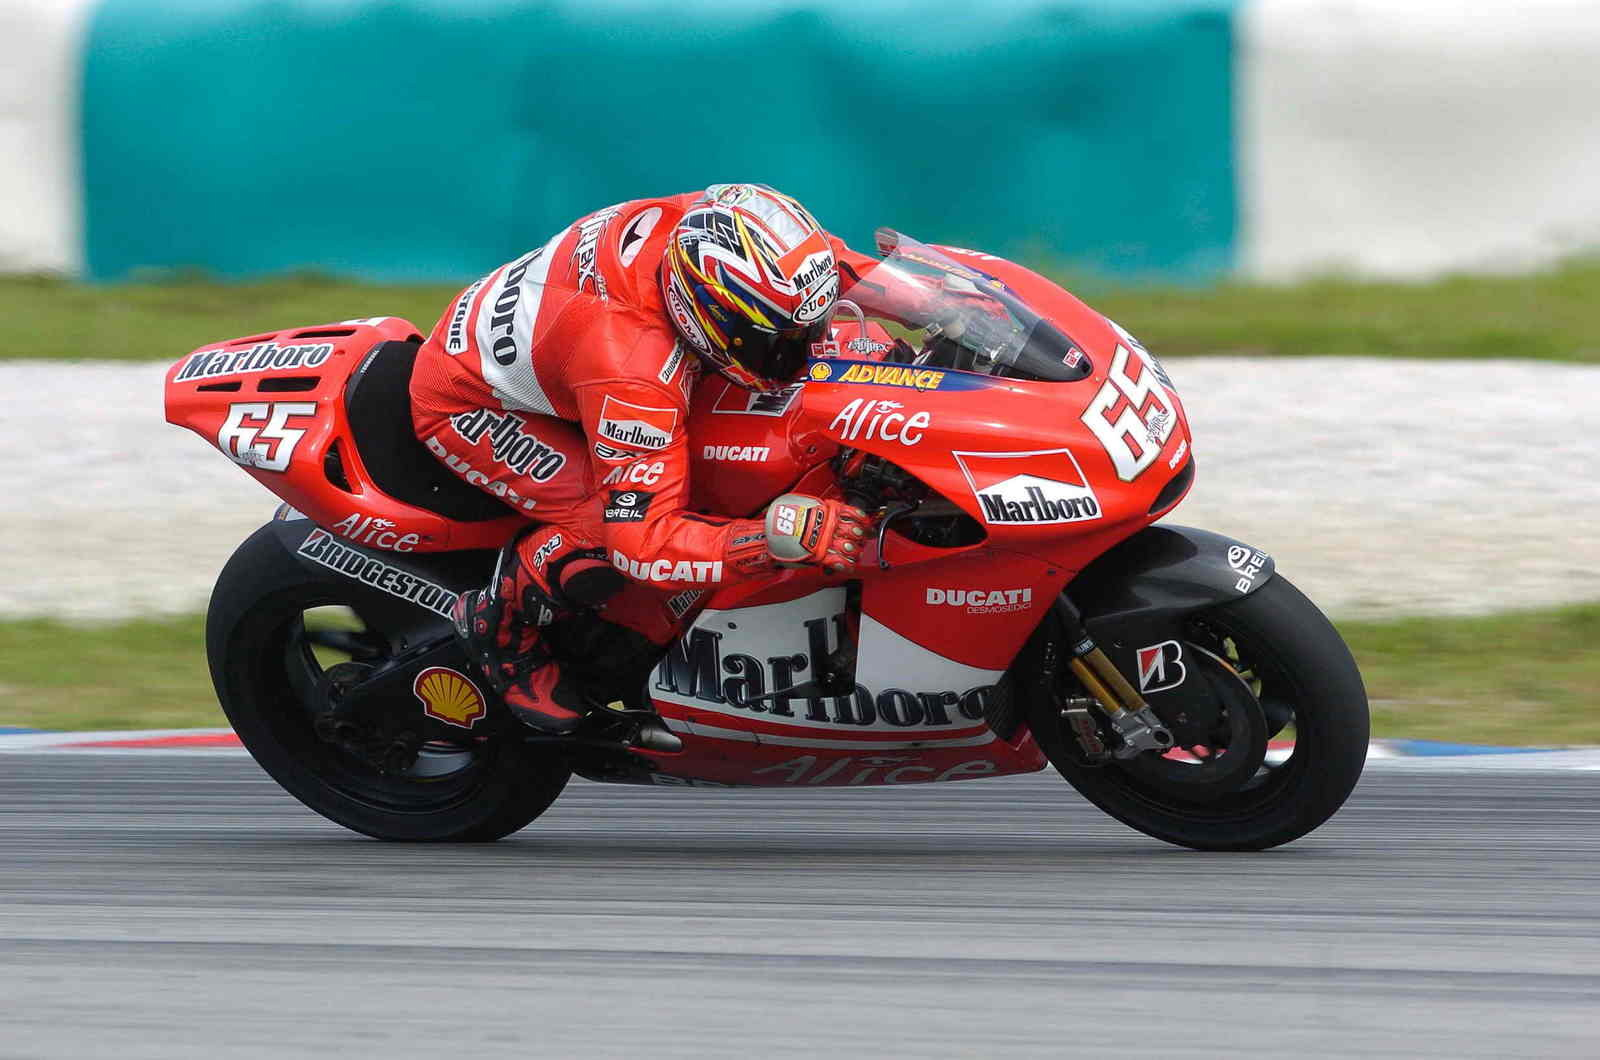 Ducati Marlboro Team Aims For 990cc Finale News - Top Speed